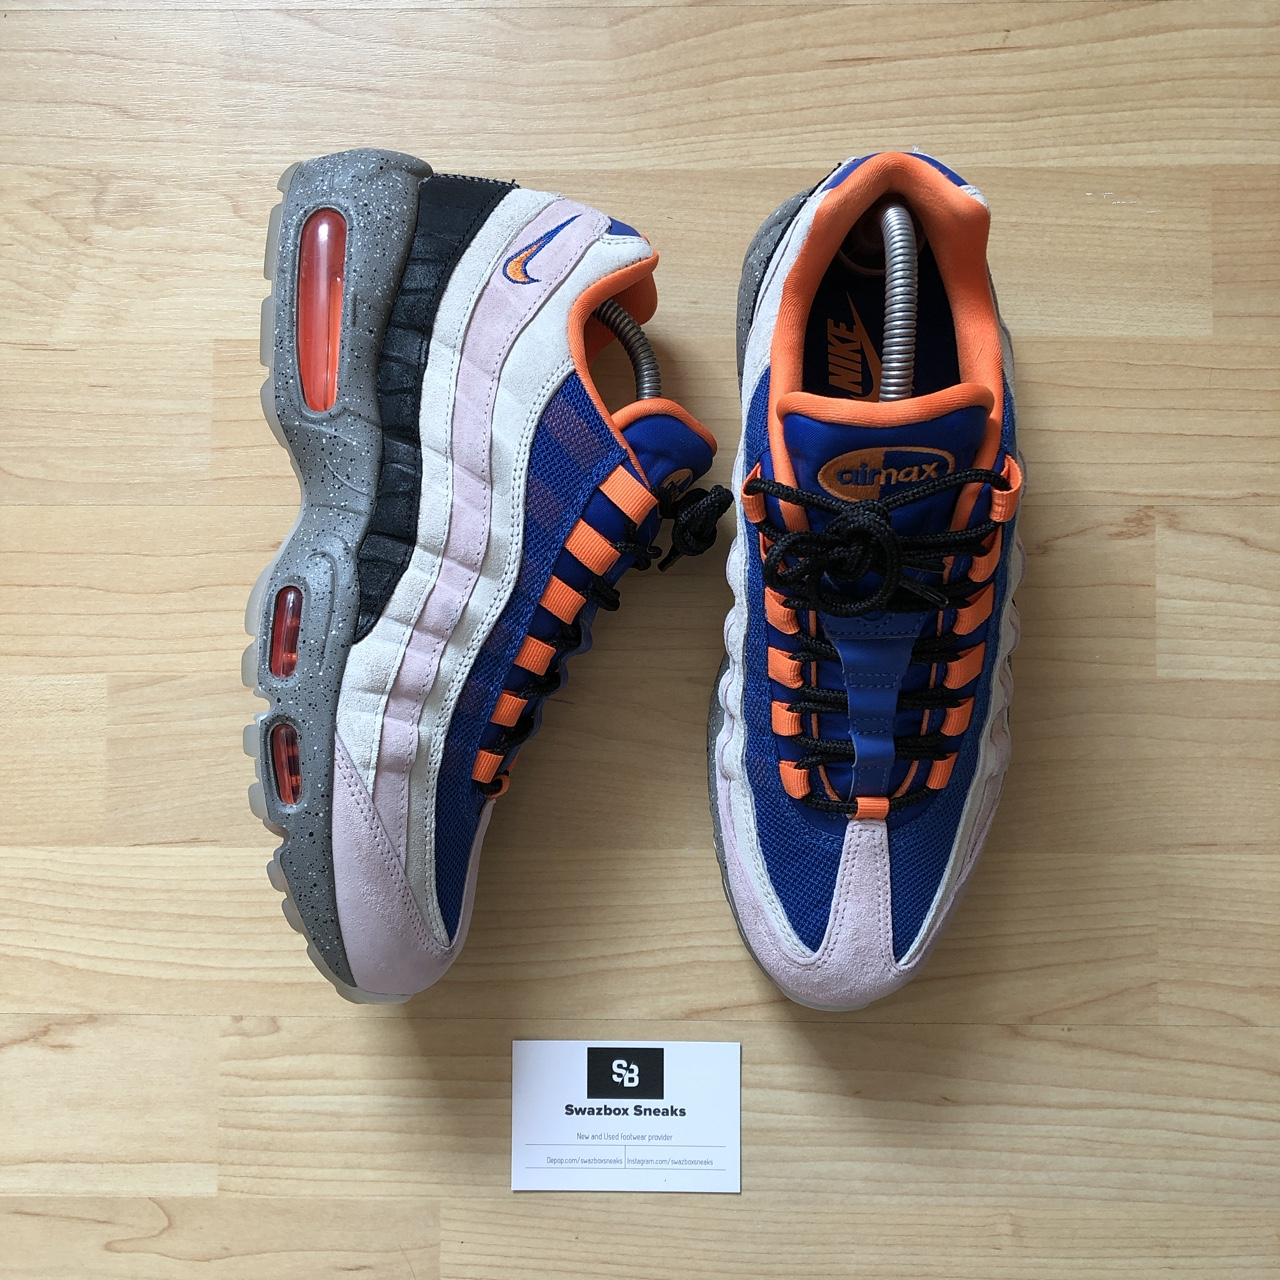 finest selection 28733 898d5 Nike Air max 95 - Acg mowabb - Uk 8 Used Lightly,... - Depop